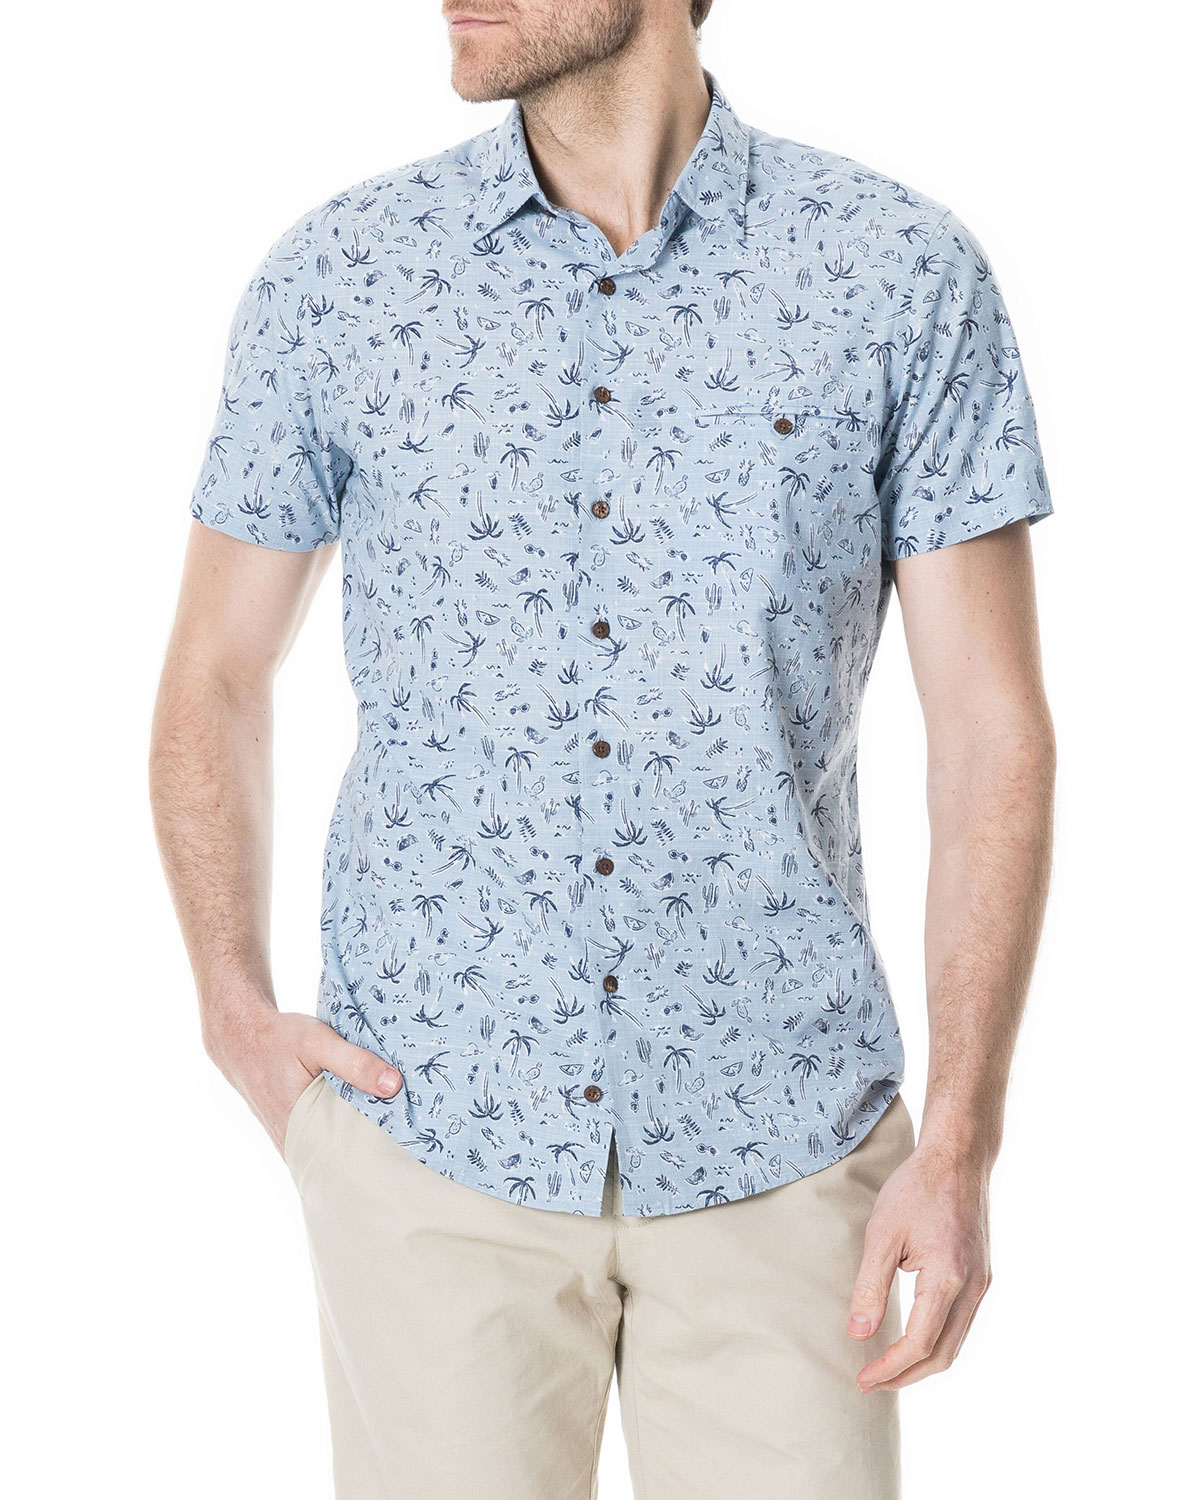 Men's Urquharts Beaches Shirt